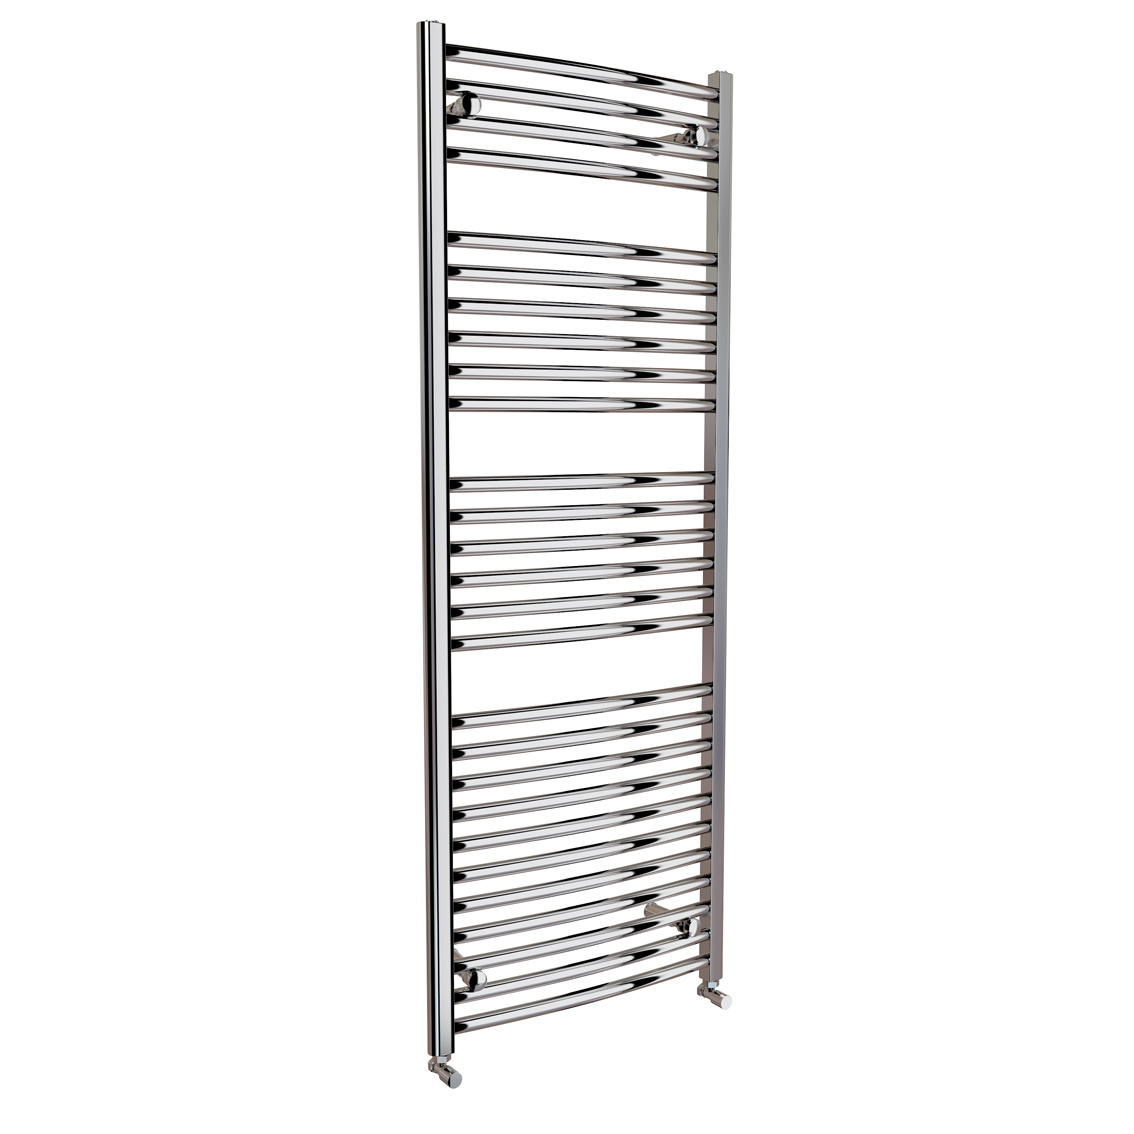 1200x600mm Chrome Curved Rail Ladder Towel Radiator - Natasha